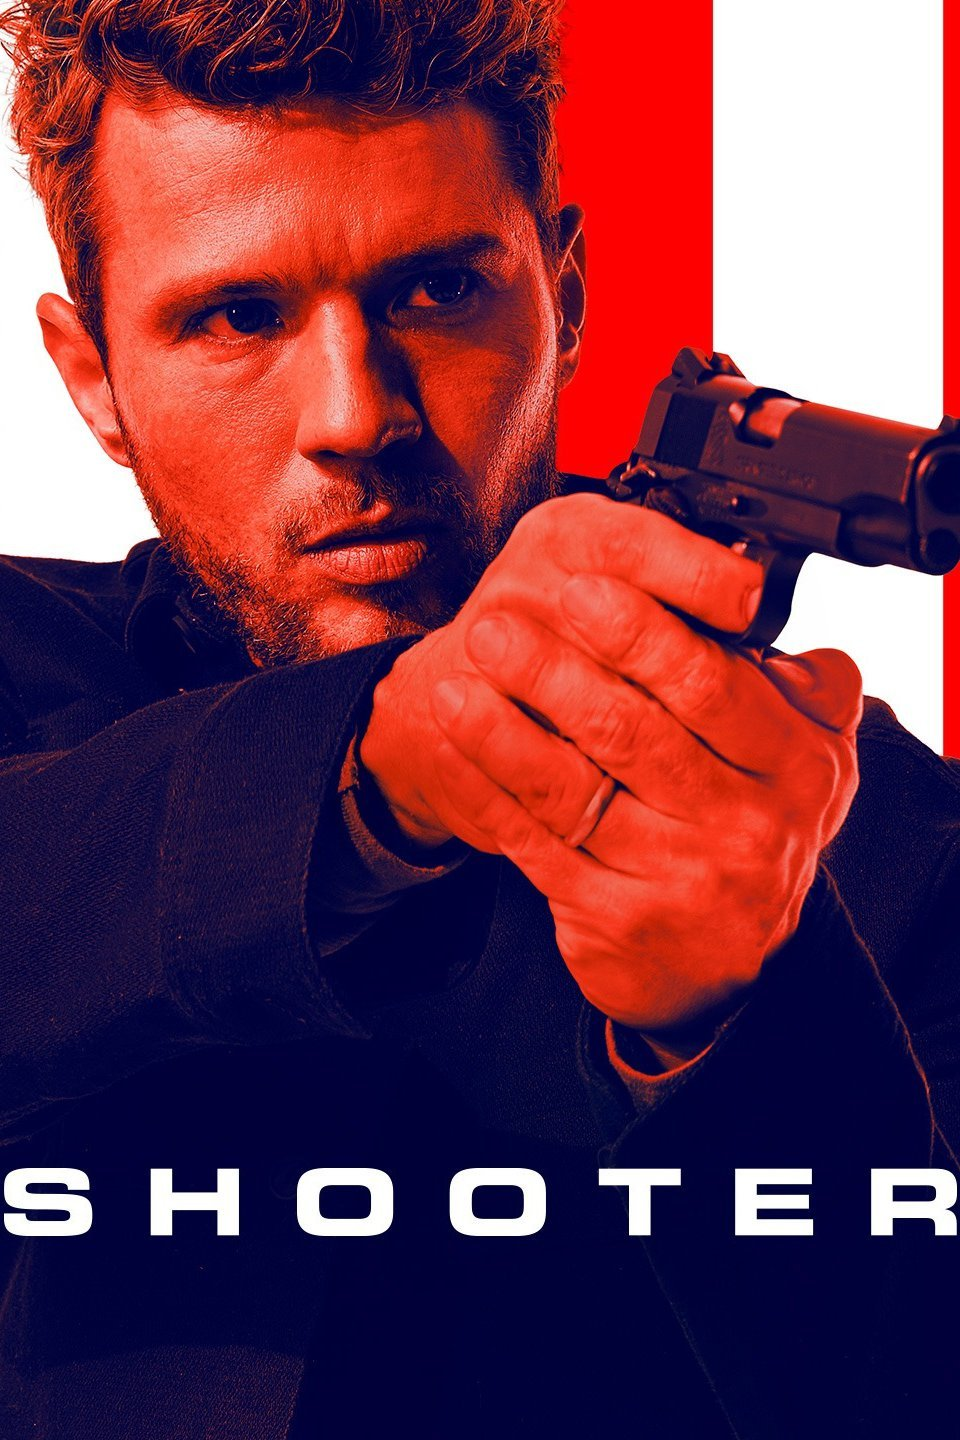 Shooter Season 2 Episode 5 HDTV Micromkv